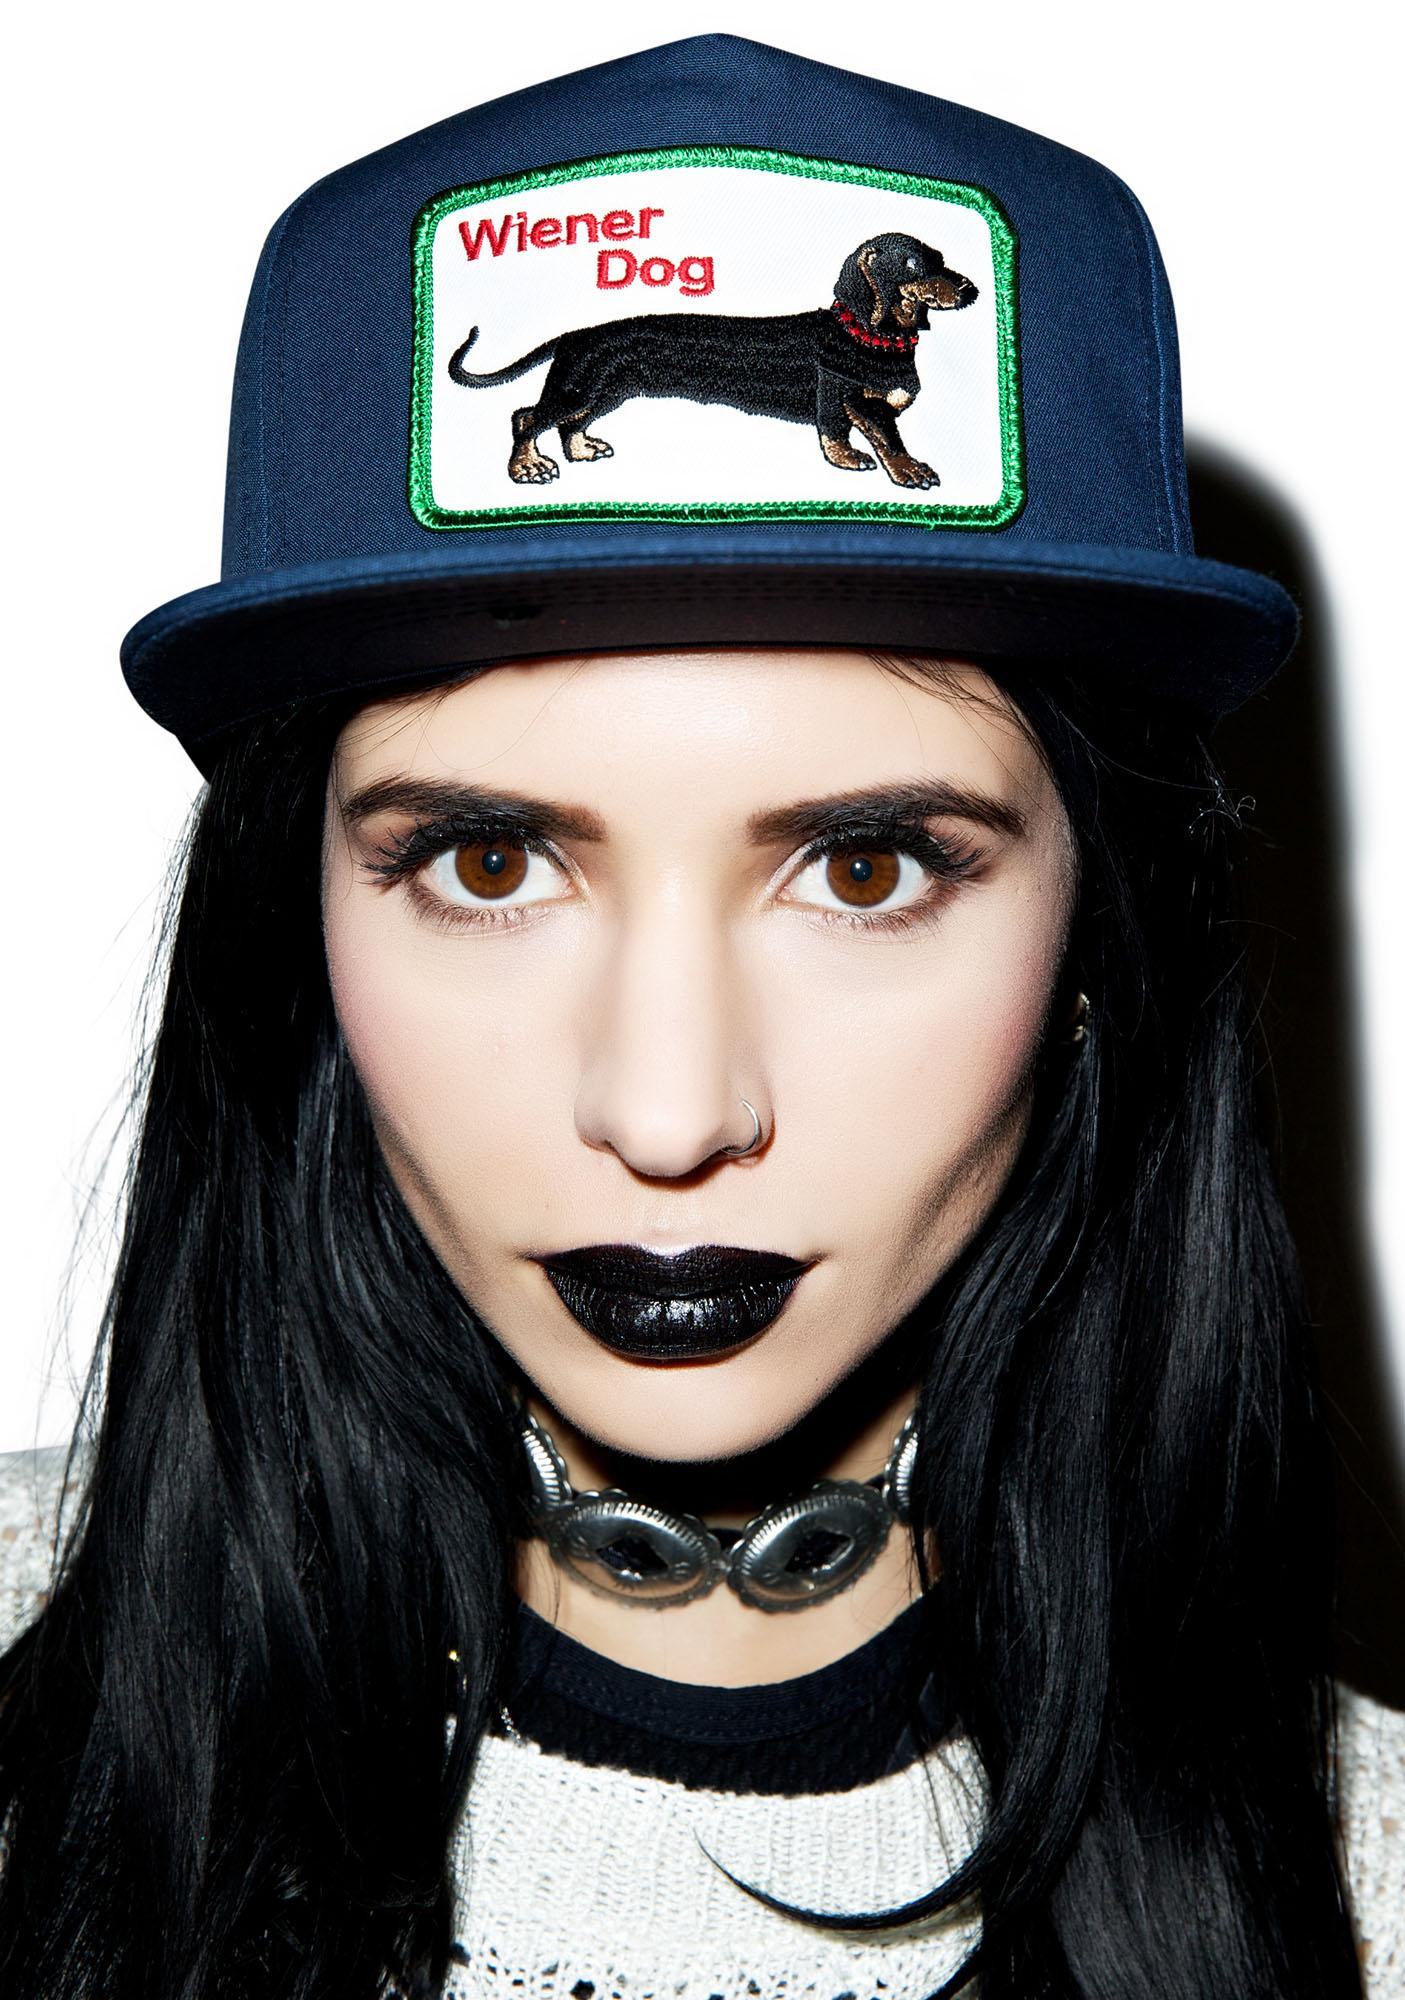 Dog LTD. Wiener Dog Snapback